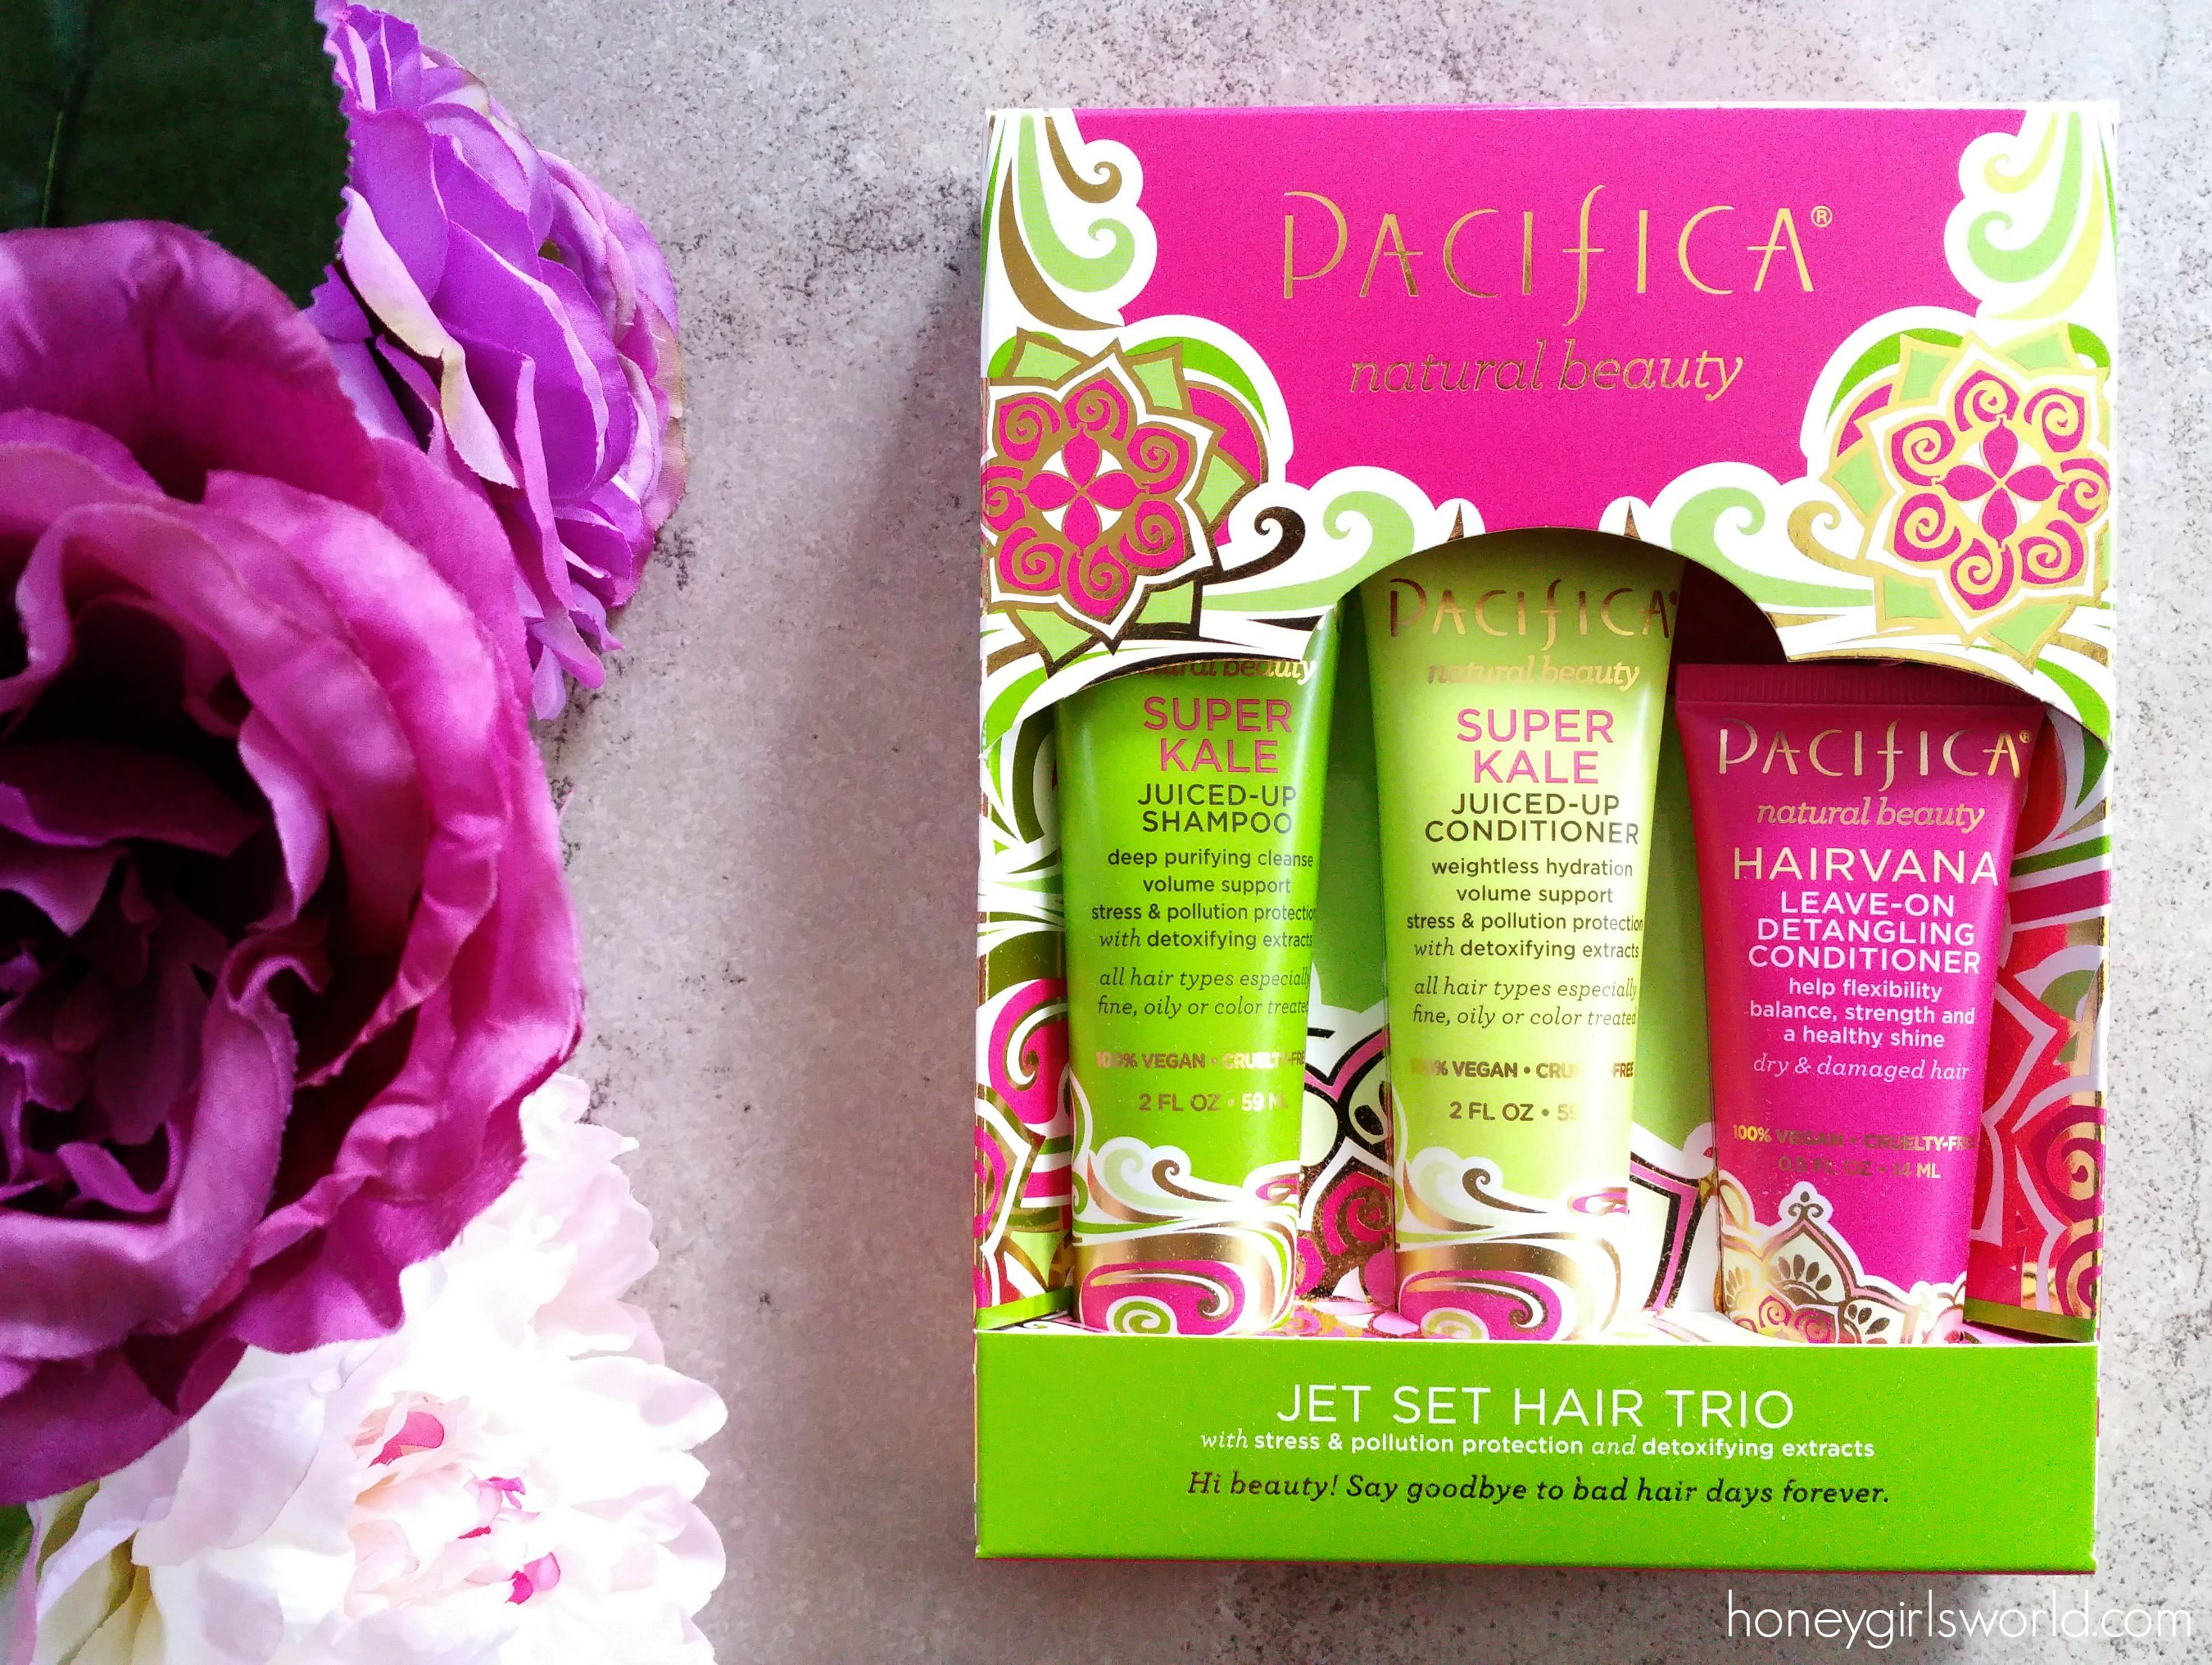 Pacifica Beauty, Pacifica, beauty, hair, hair care, ulta, hair healing collection, pacifica jet set hair trio, hair products, conditioner, shampoo, super kale, beauty products,